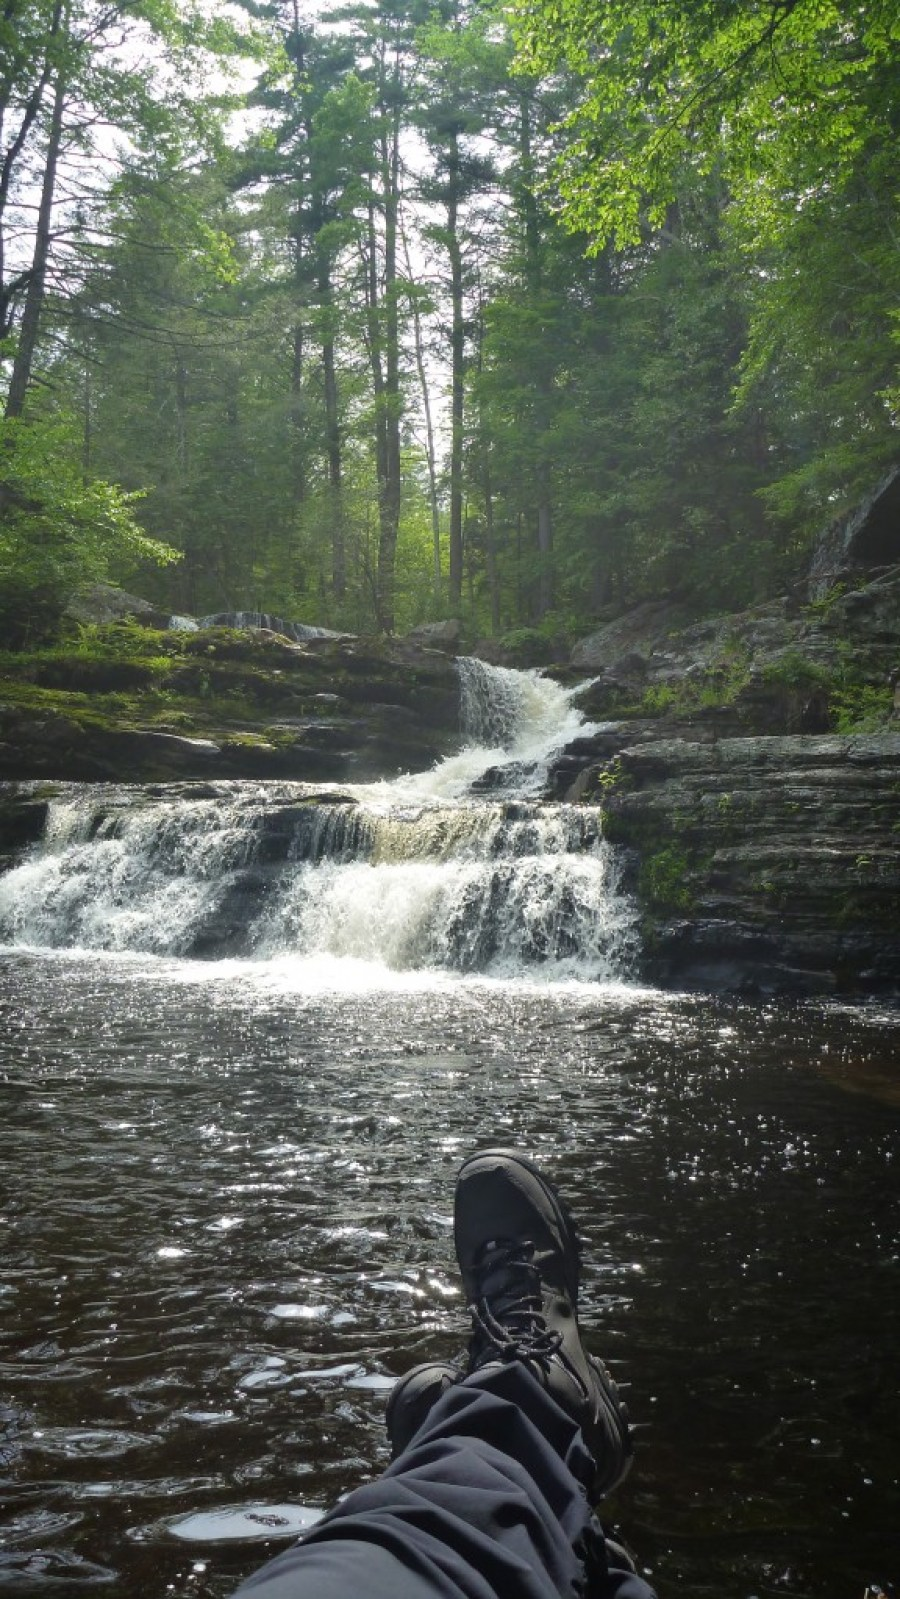 Hiking in the Pocono mountains